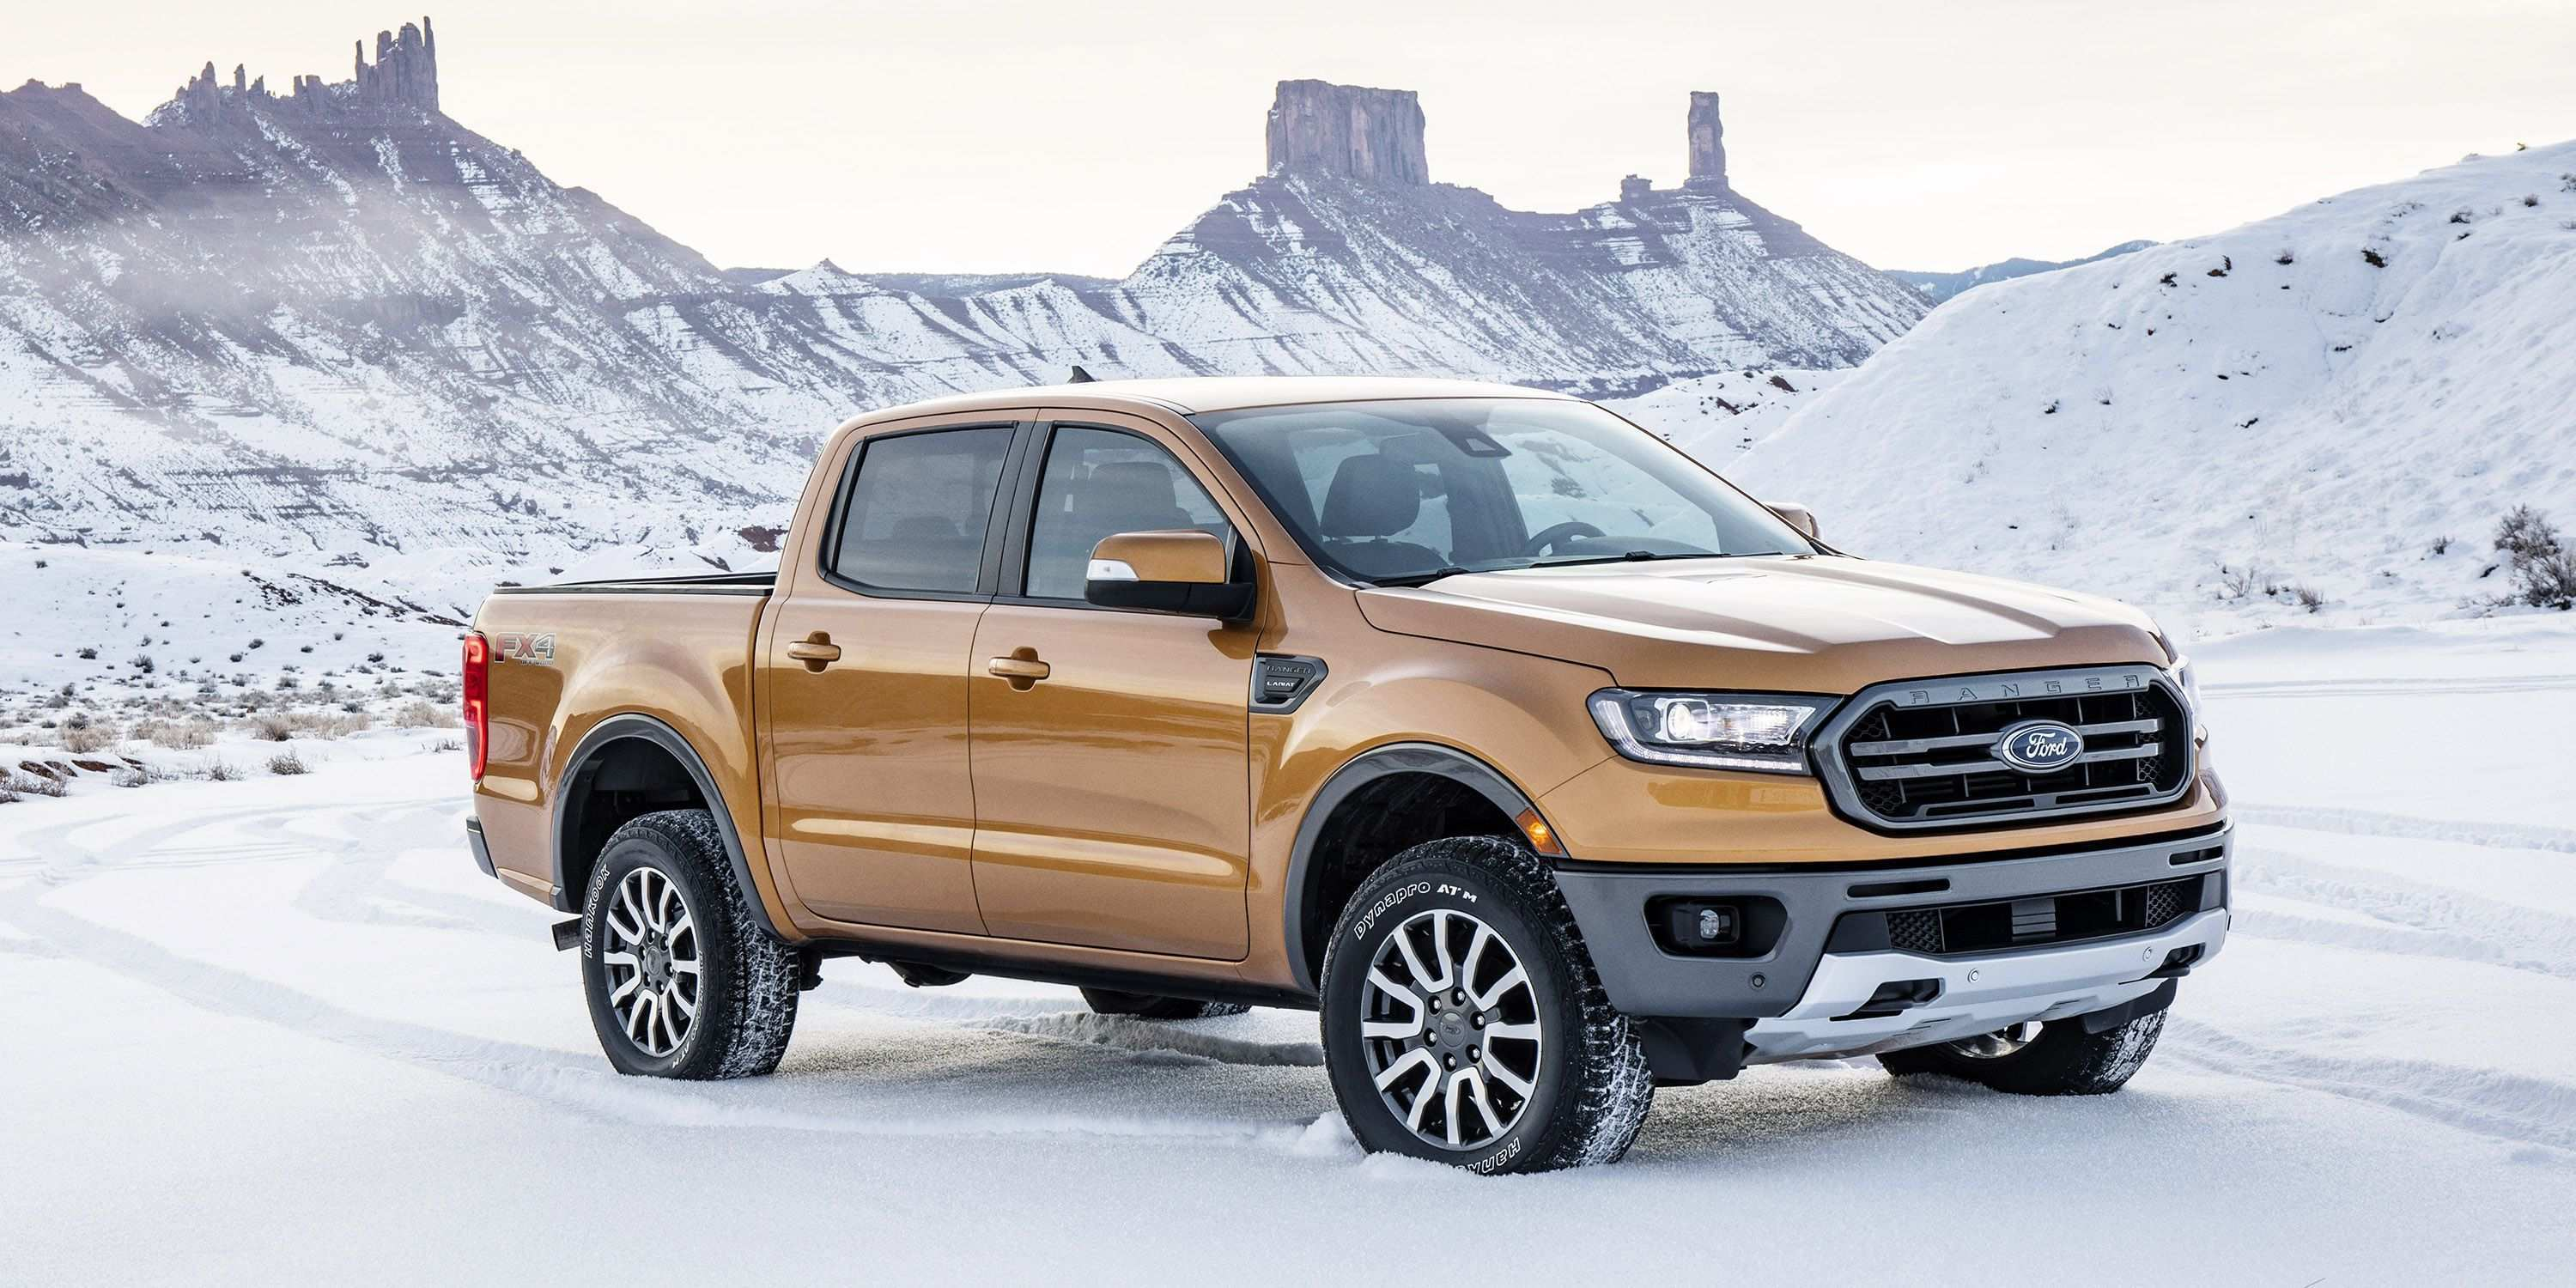 46 Best Review F2019 Ford Ranger Specs and Review with F2019 Ford Ranger